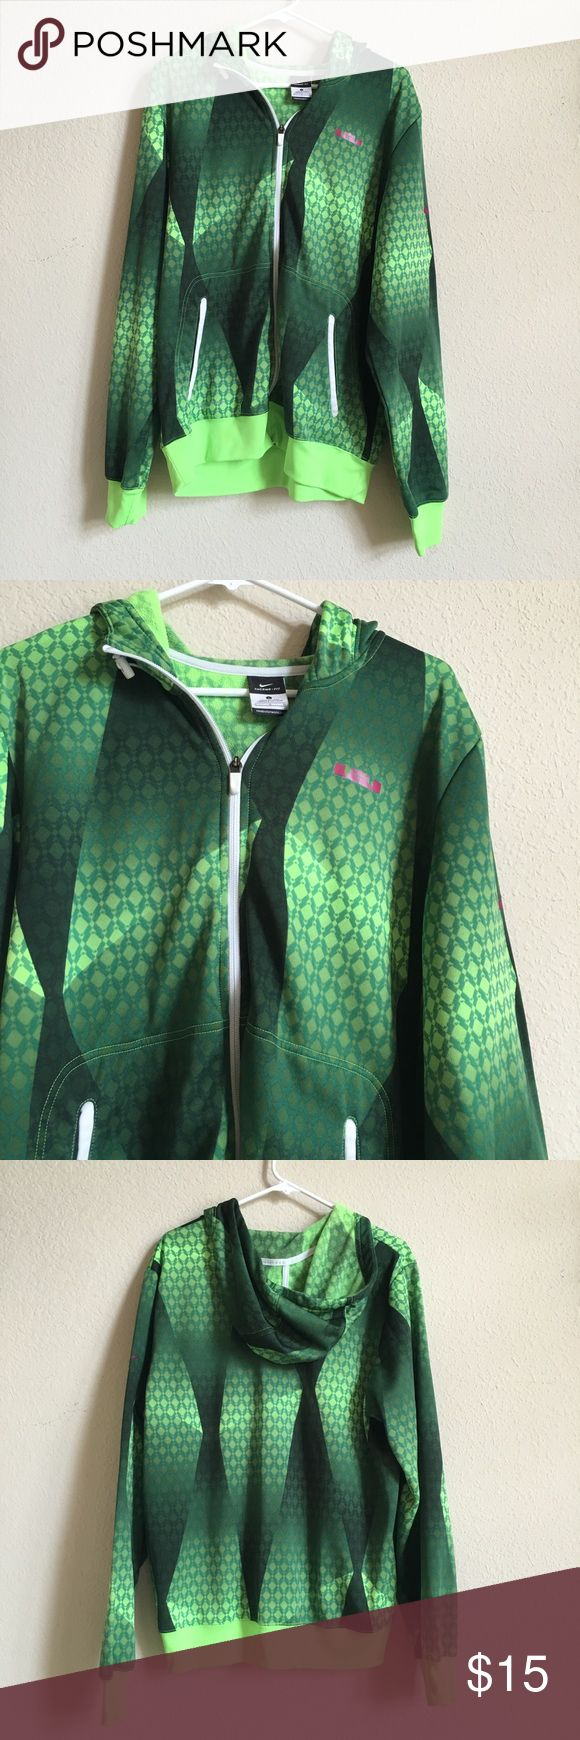 Nike Lebron James Hoodie Selling a size large Nike Lebron James Zip Up Hoodie. The hoodie is in good condition! Nike Jackets & Coats